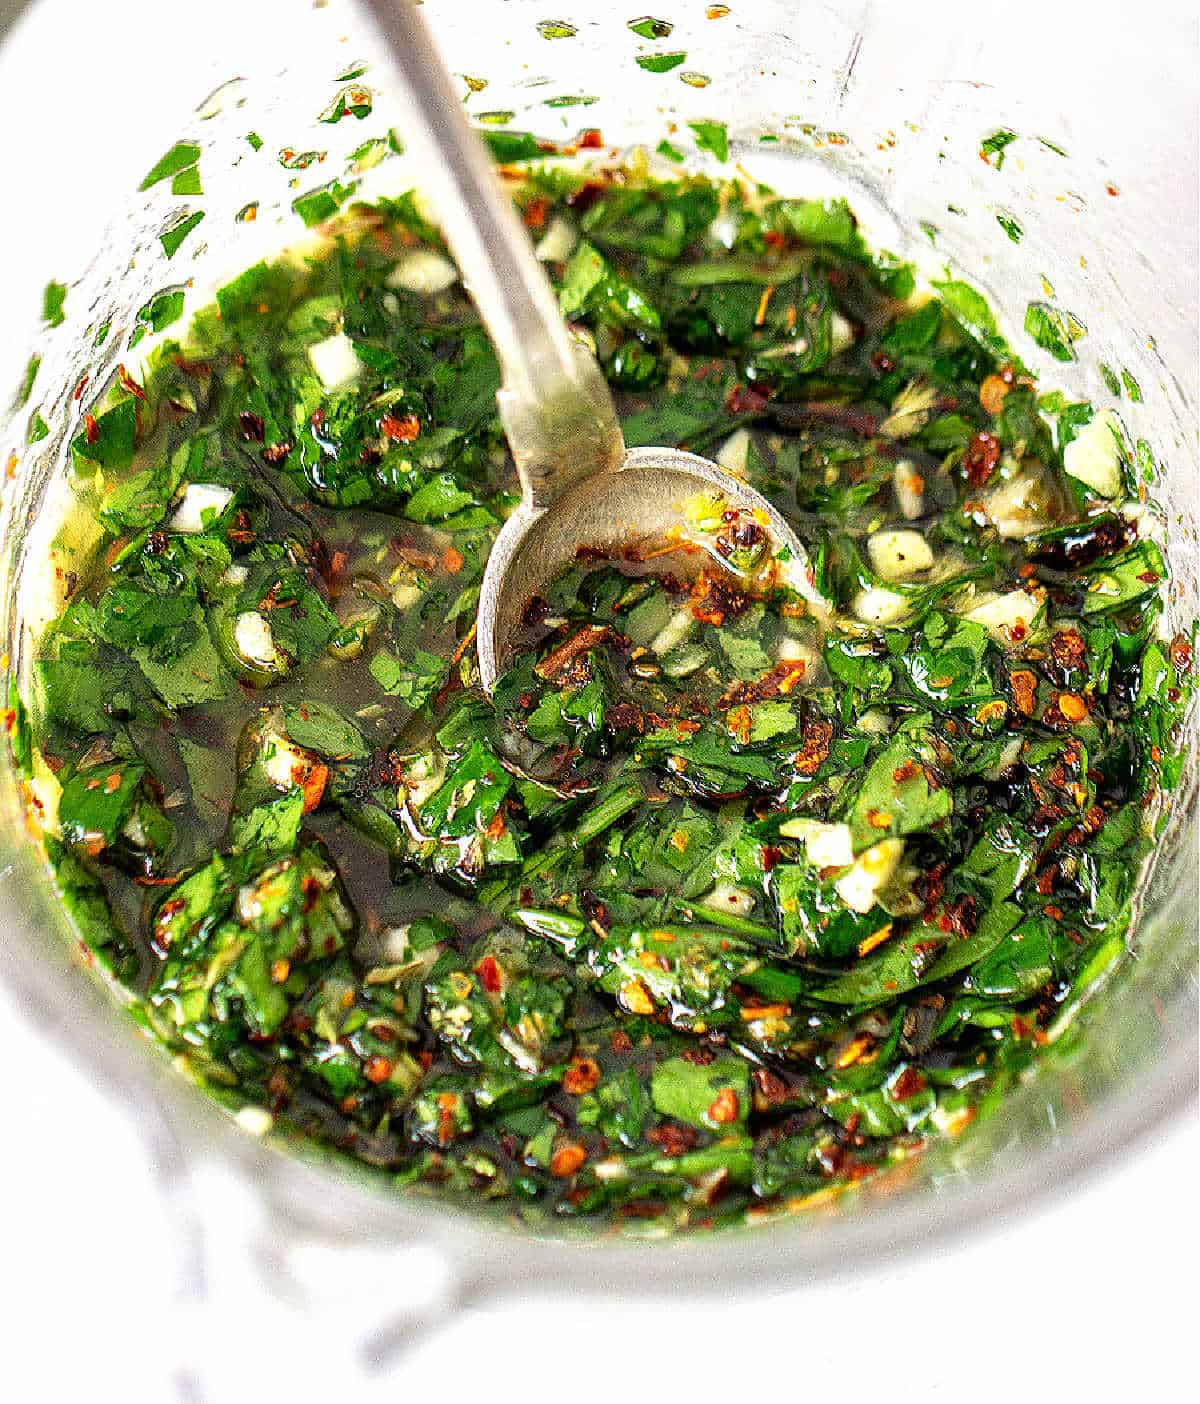 Silver spoon inside green chimichurri sauce in glass container, white surface